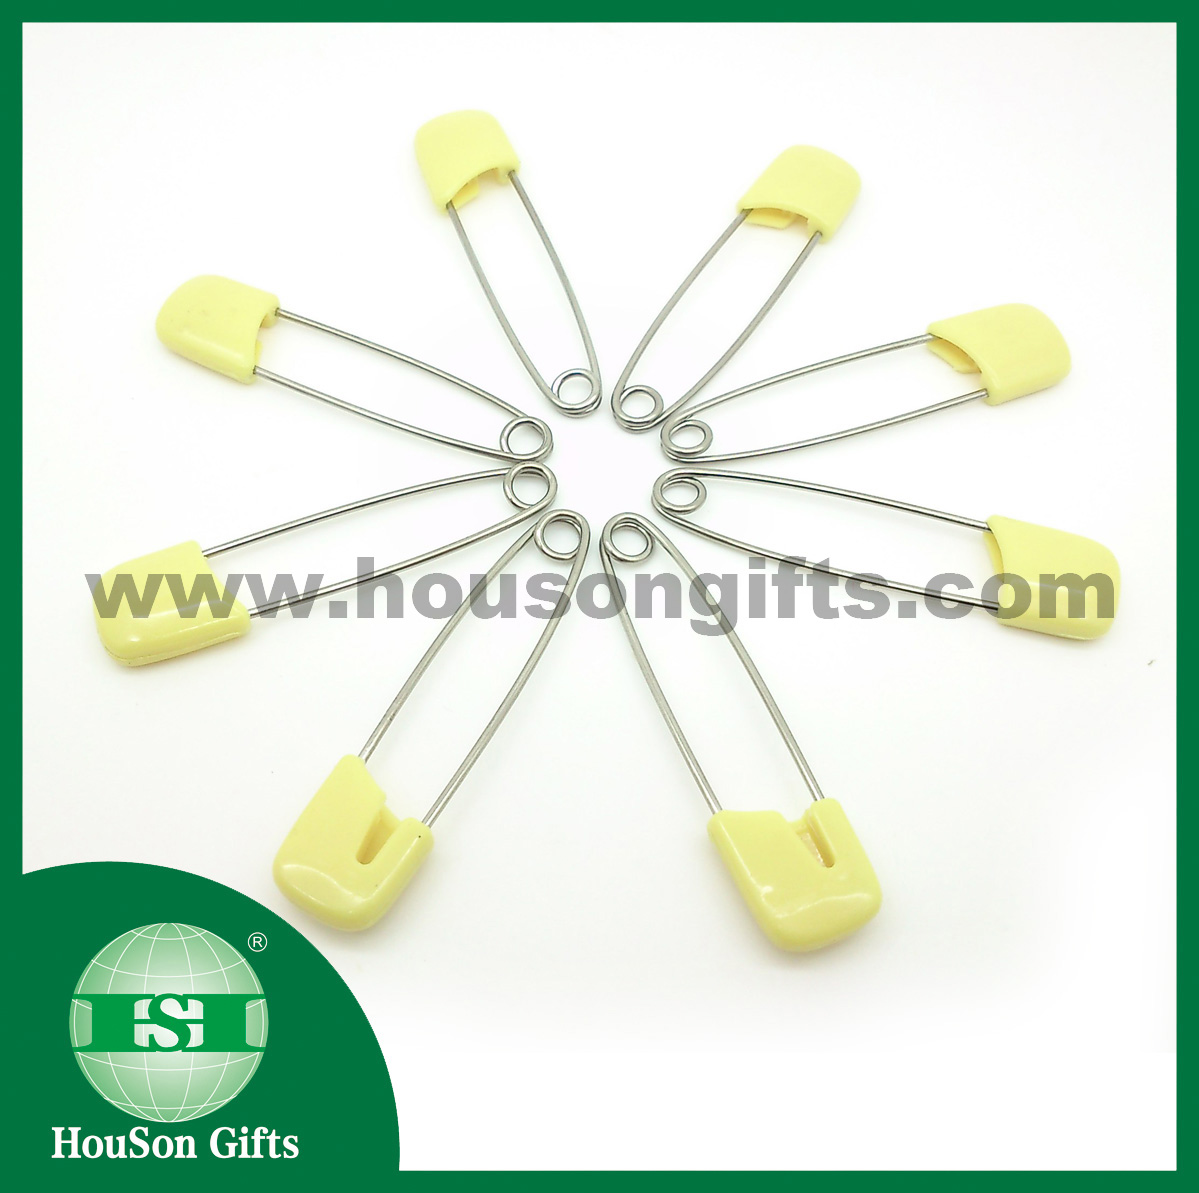 Yellow plastic head stainless steel safety pins